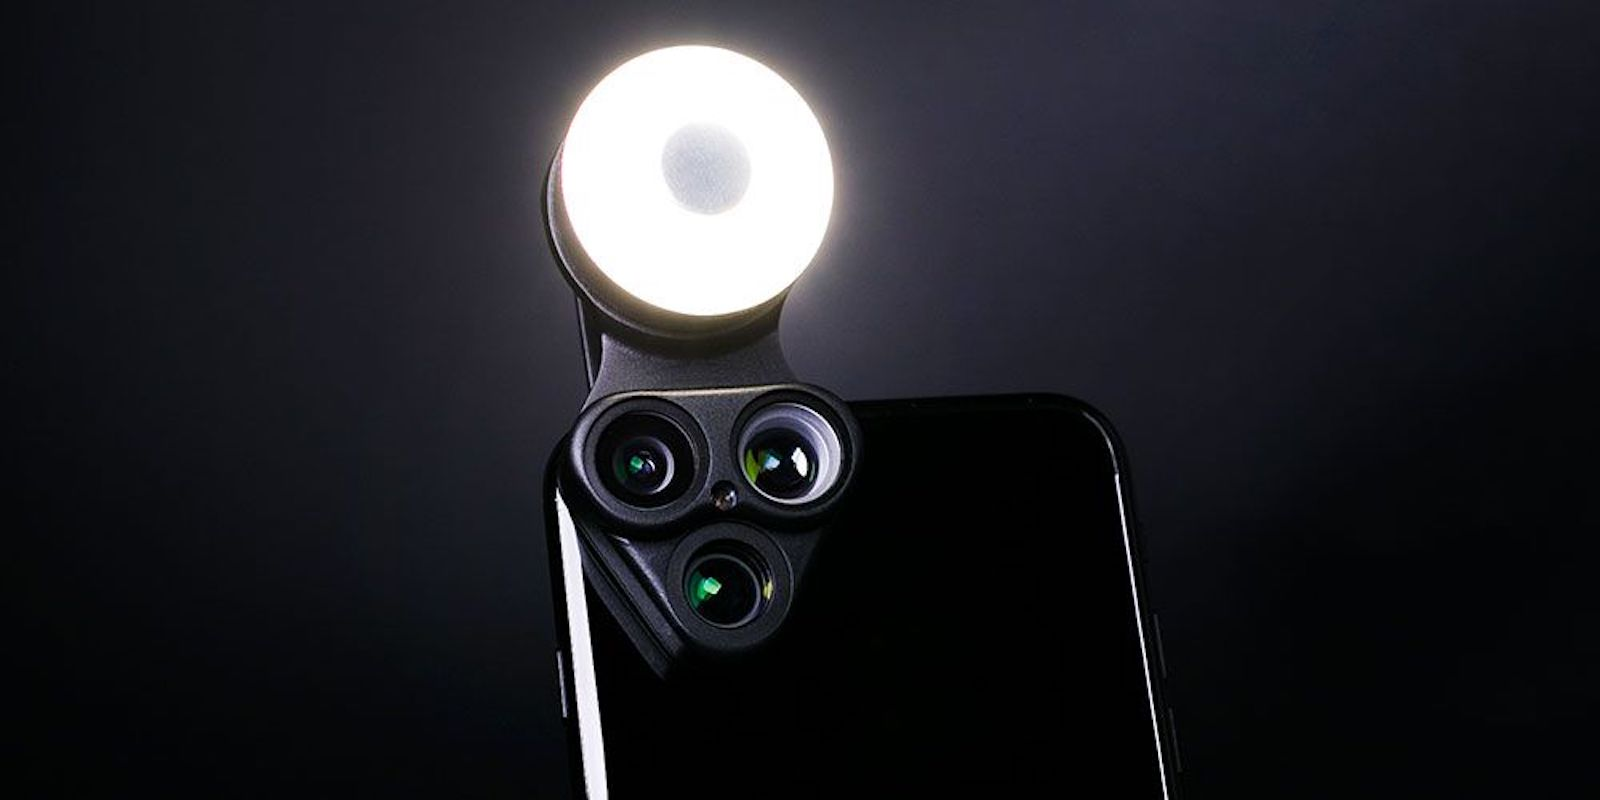 Instantly enhance the photo capabilities of your iPhone with three lenses, an LED flash, and more.